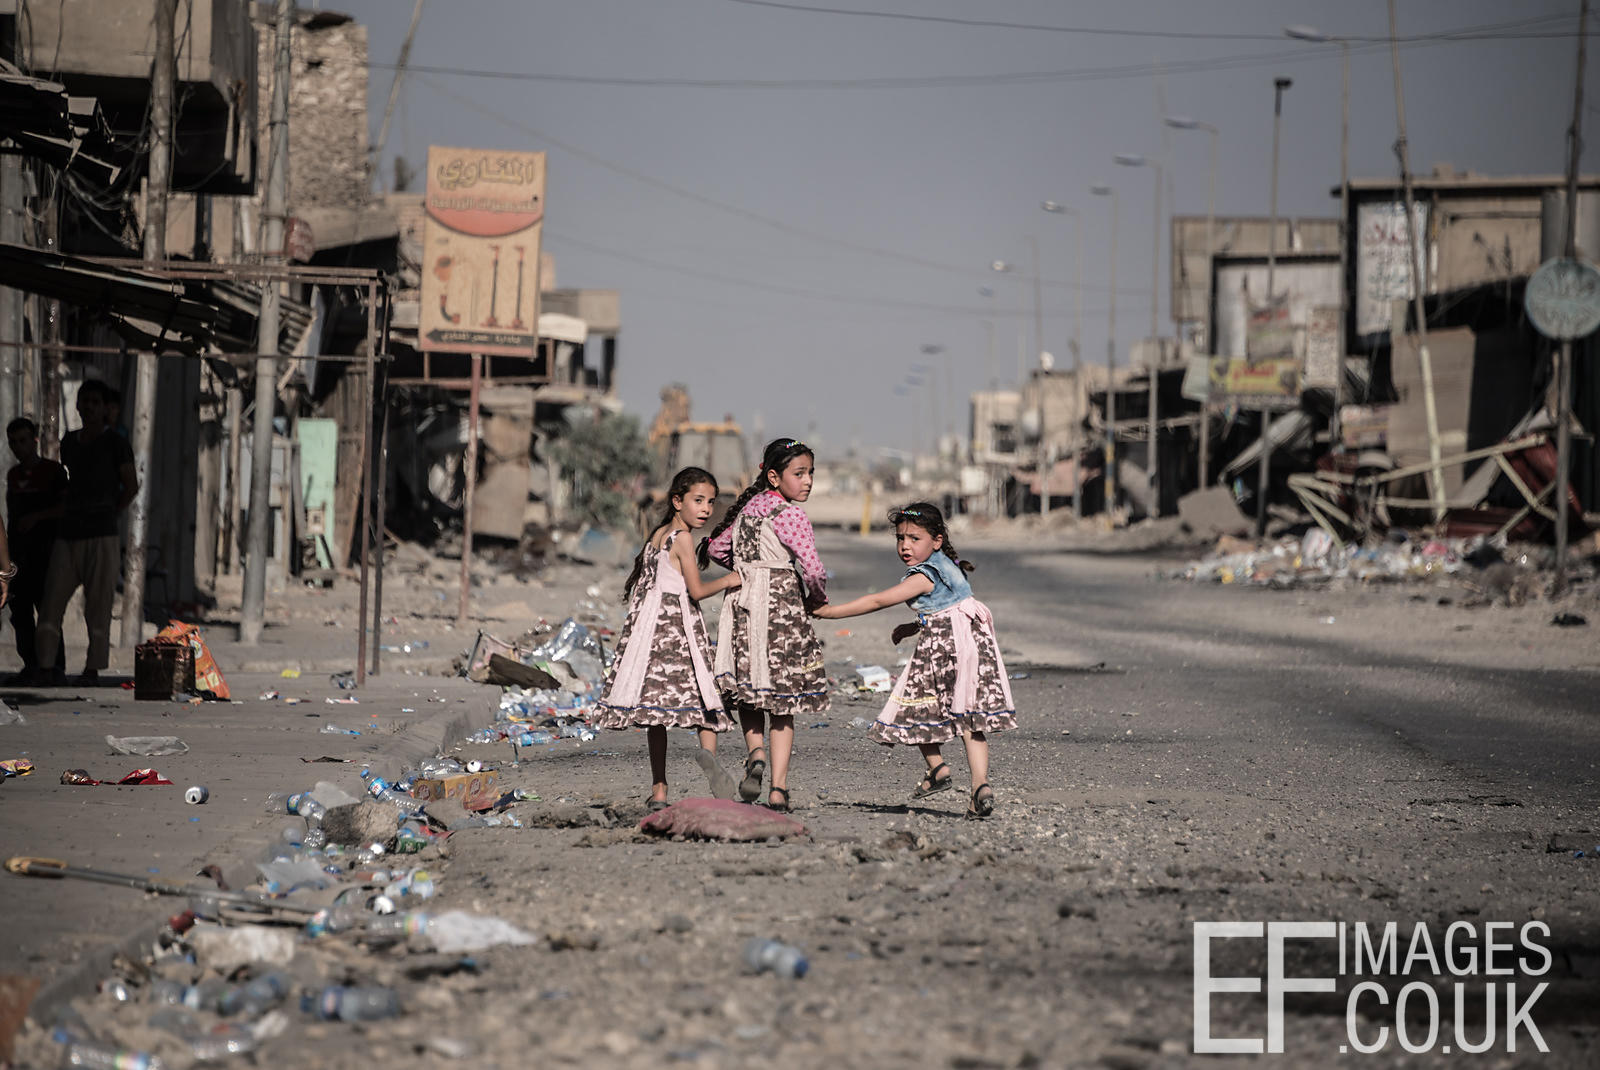 Girls in dresses made from old Soldiers uniforms and pink offcuts walk home in a recently liberated area of West Mosul. July 2017